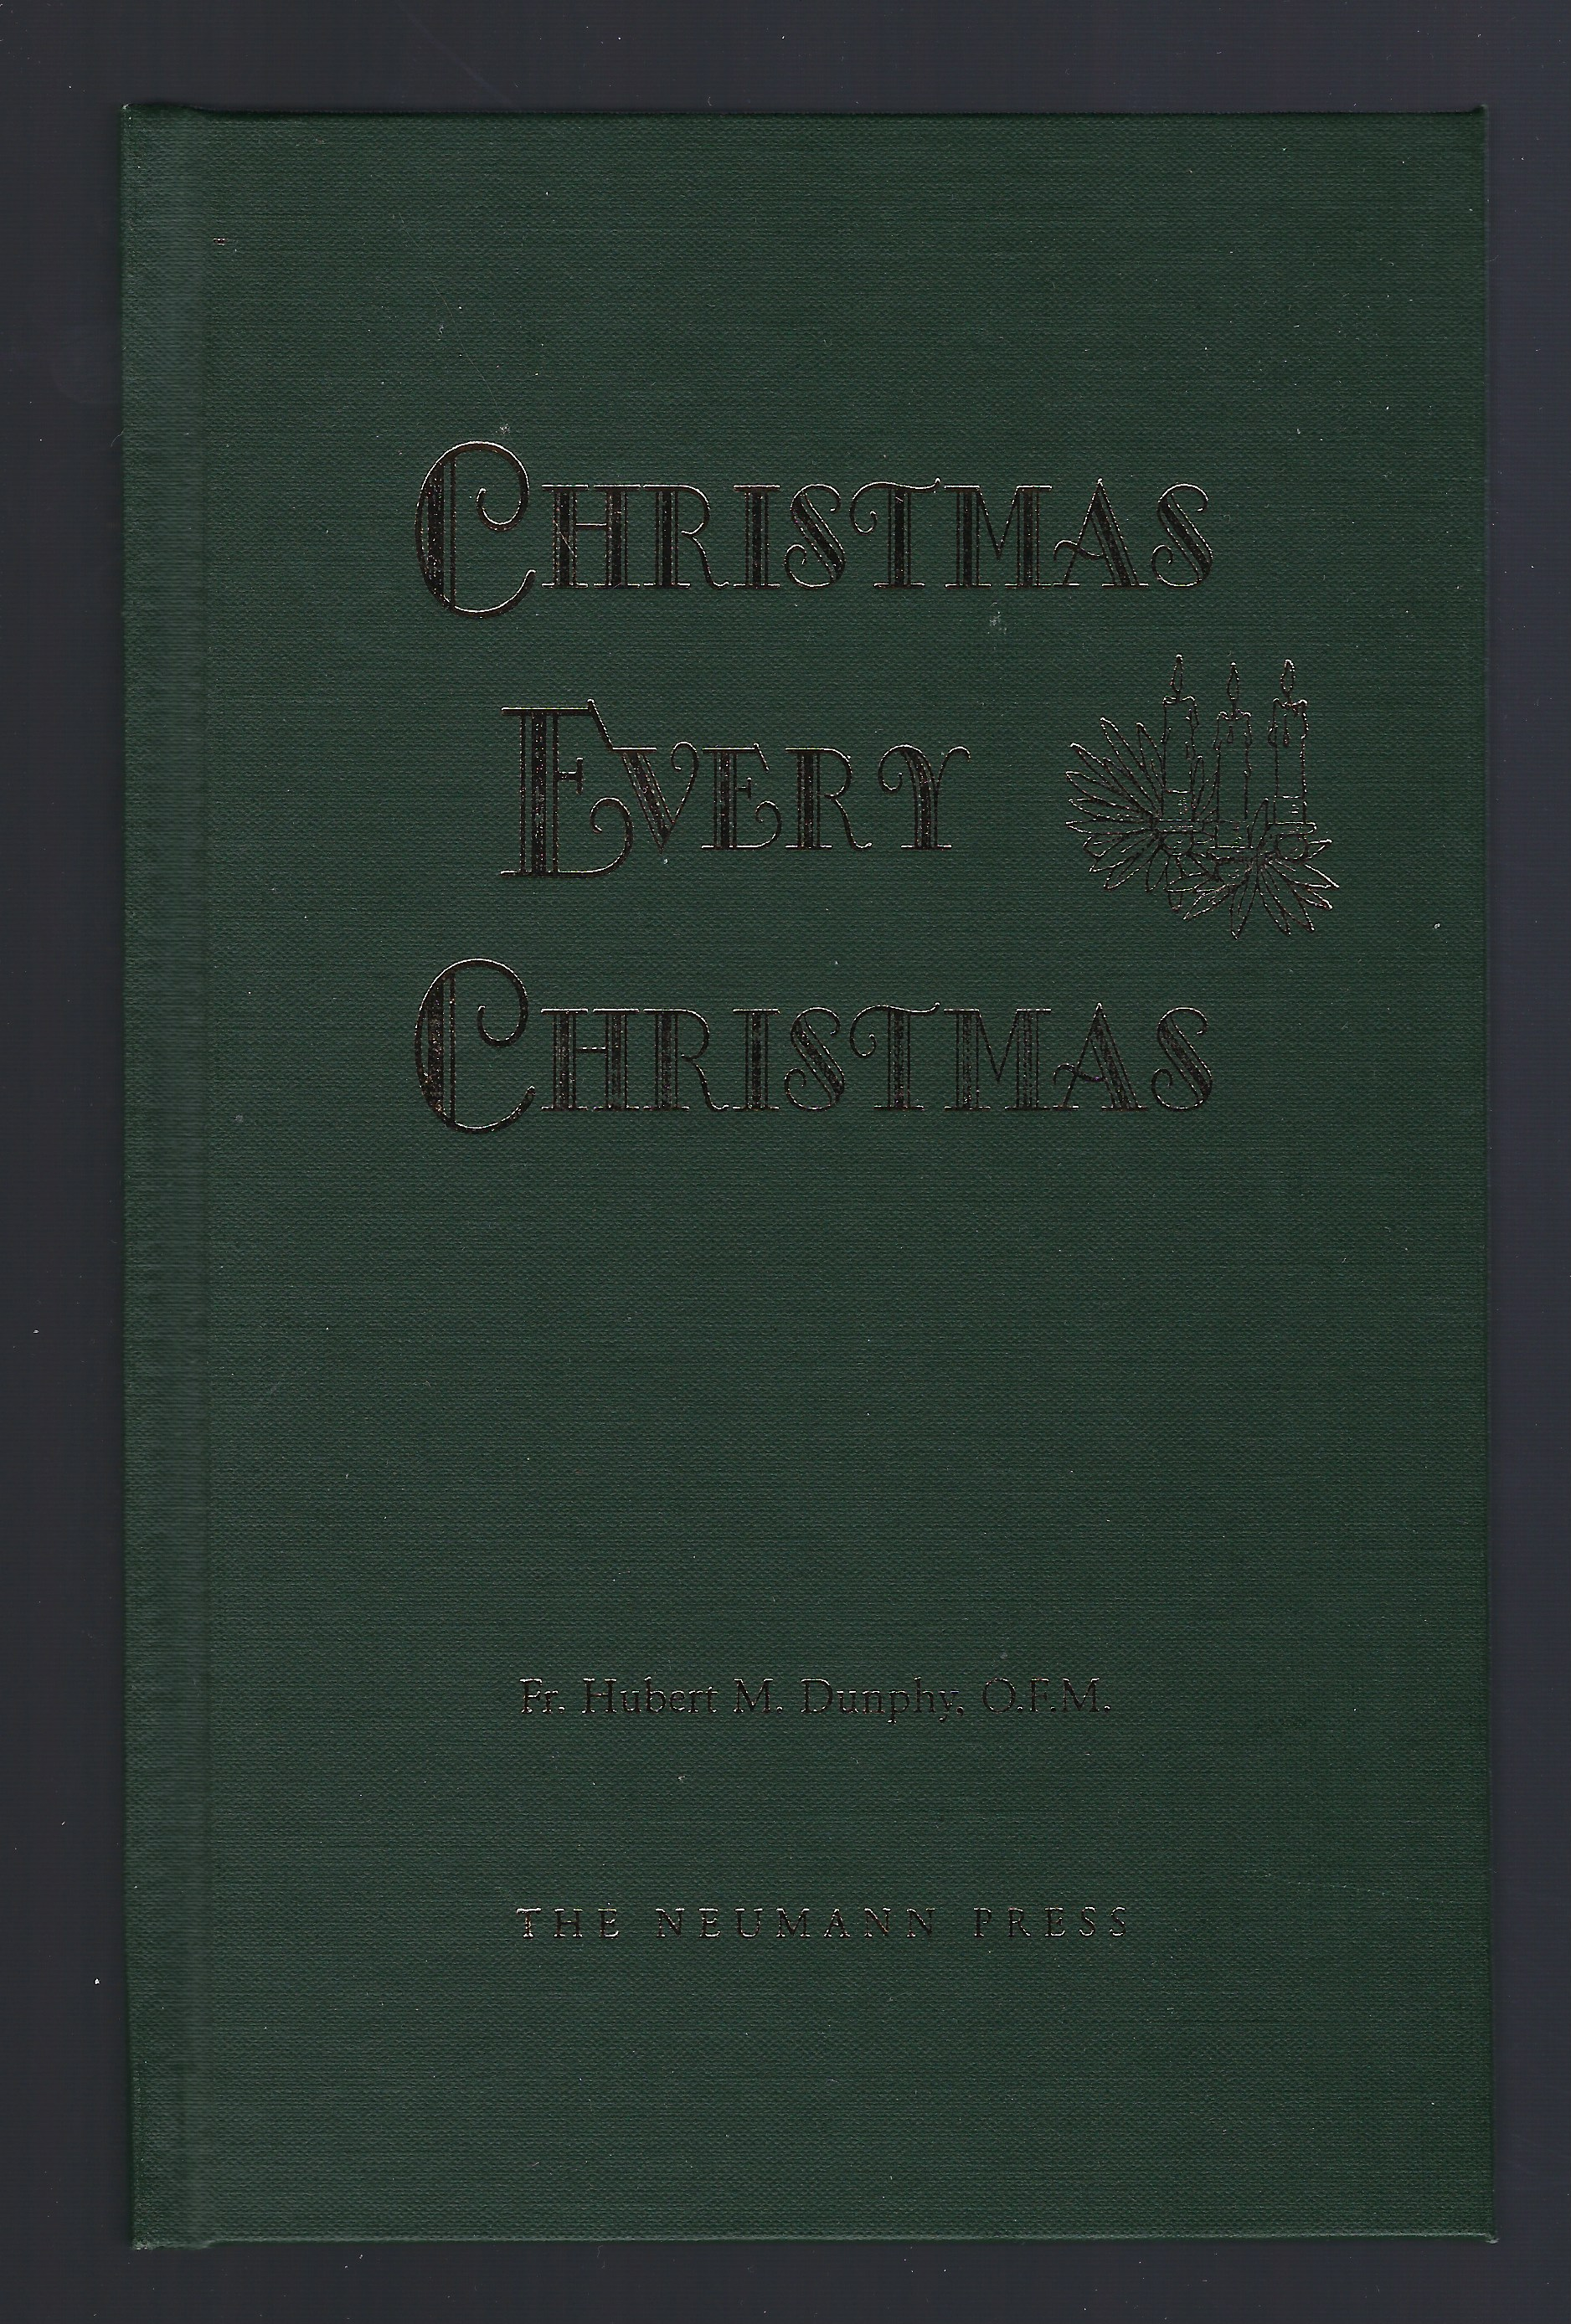 Image for Christmas every Christmas The Neumann Press OUT OF PRINT